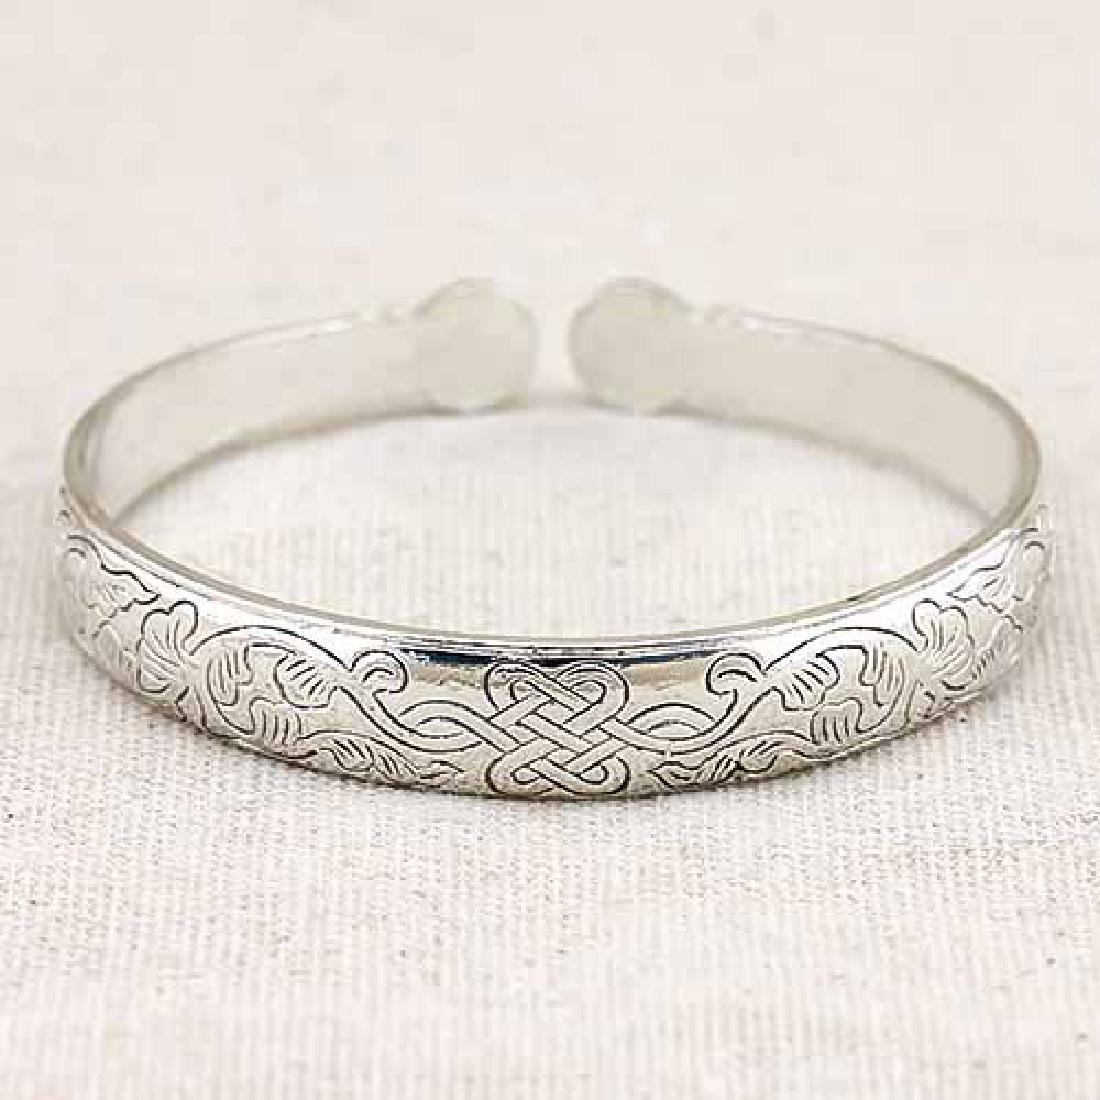 ANTIQUE SILVER ADJUSTABLE CHINESE KNOT LUCKY BANGLE